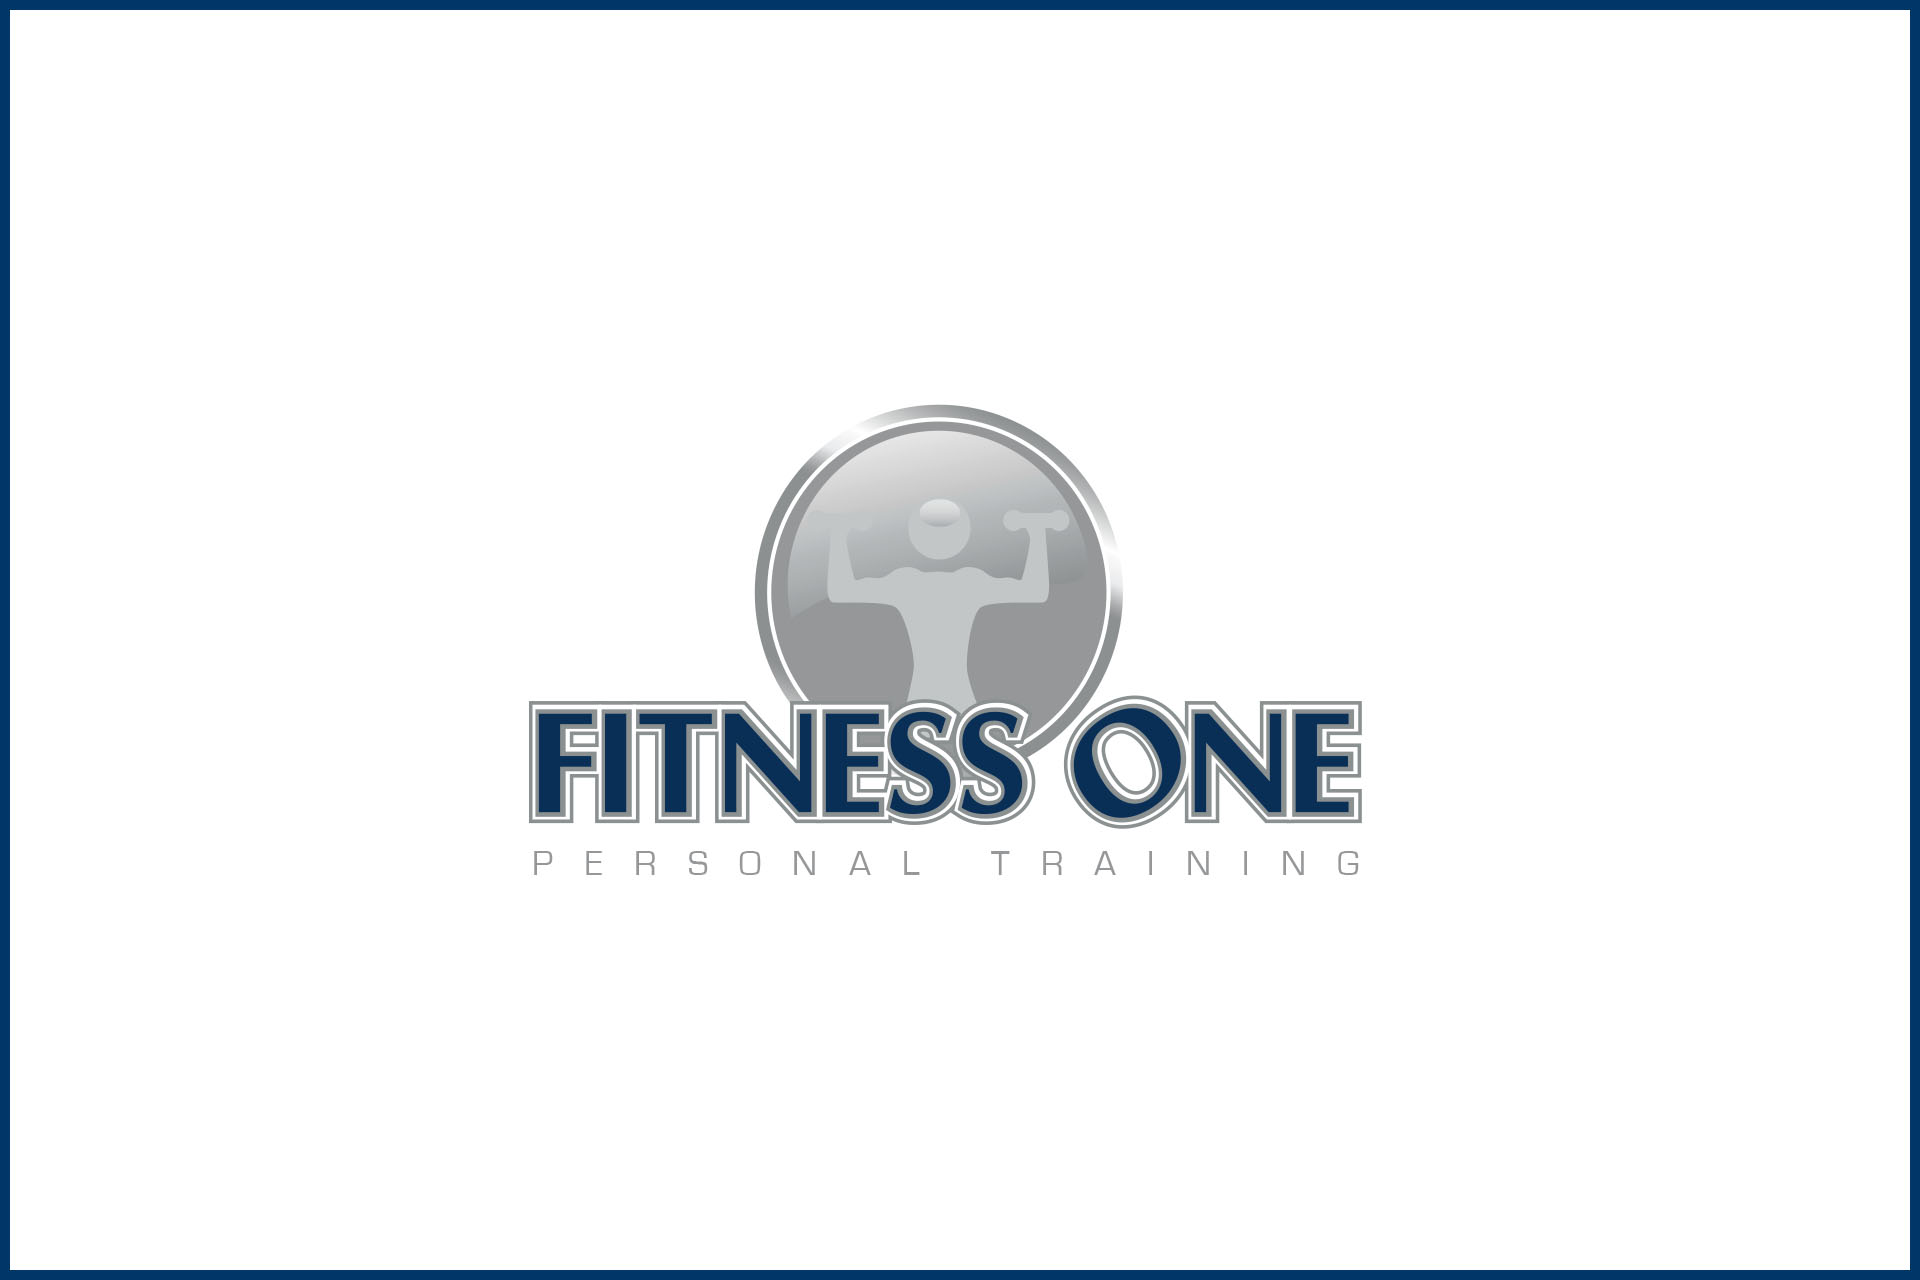 Fitness one final logo port